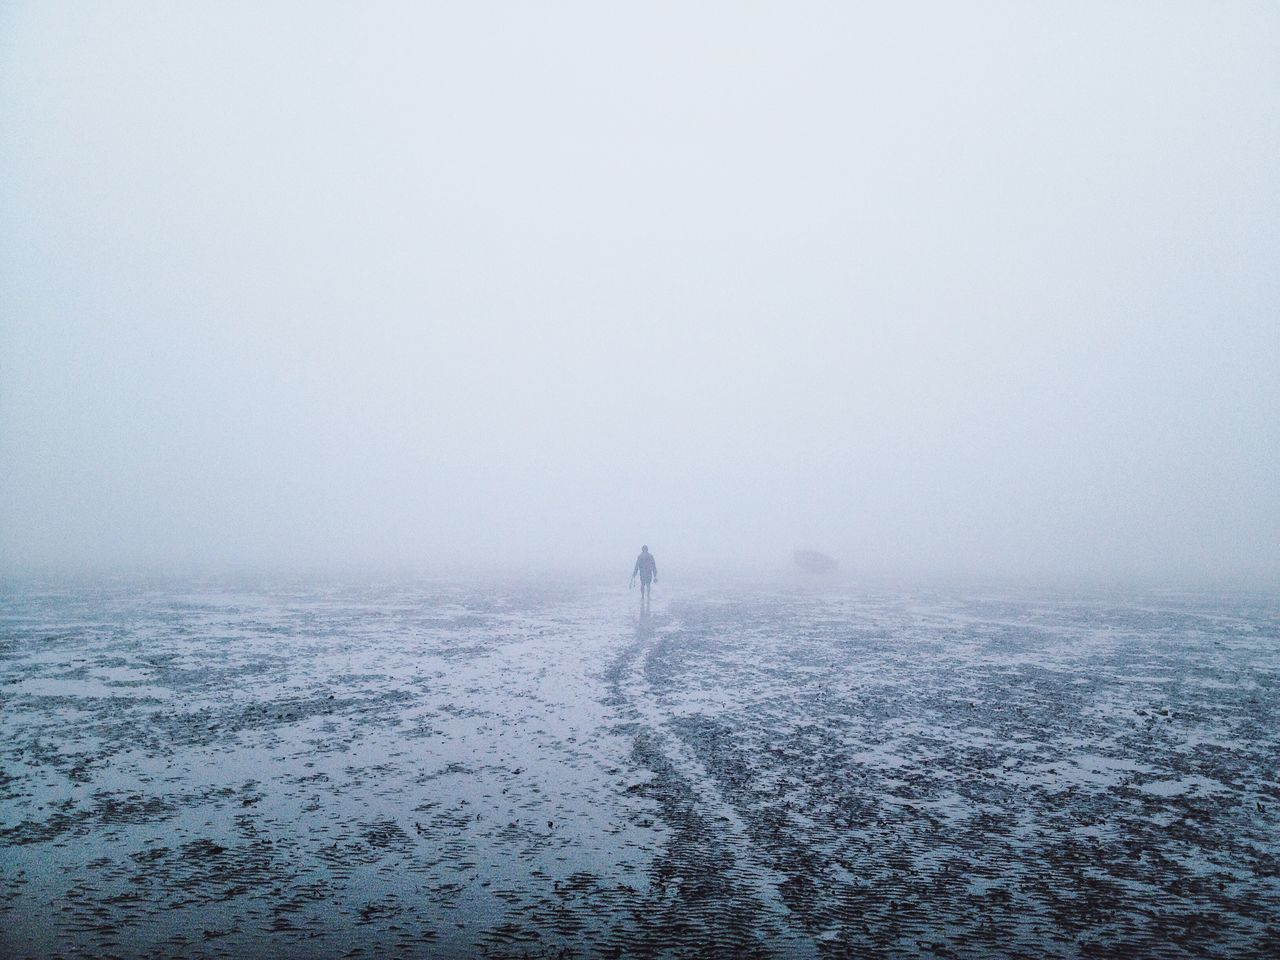 into the wild Alone Fade Fog Full Length Lifestyles Lost Outdoors Sea Tranquility Unrecognizable Person Water Weather Winter People And Places